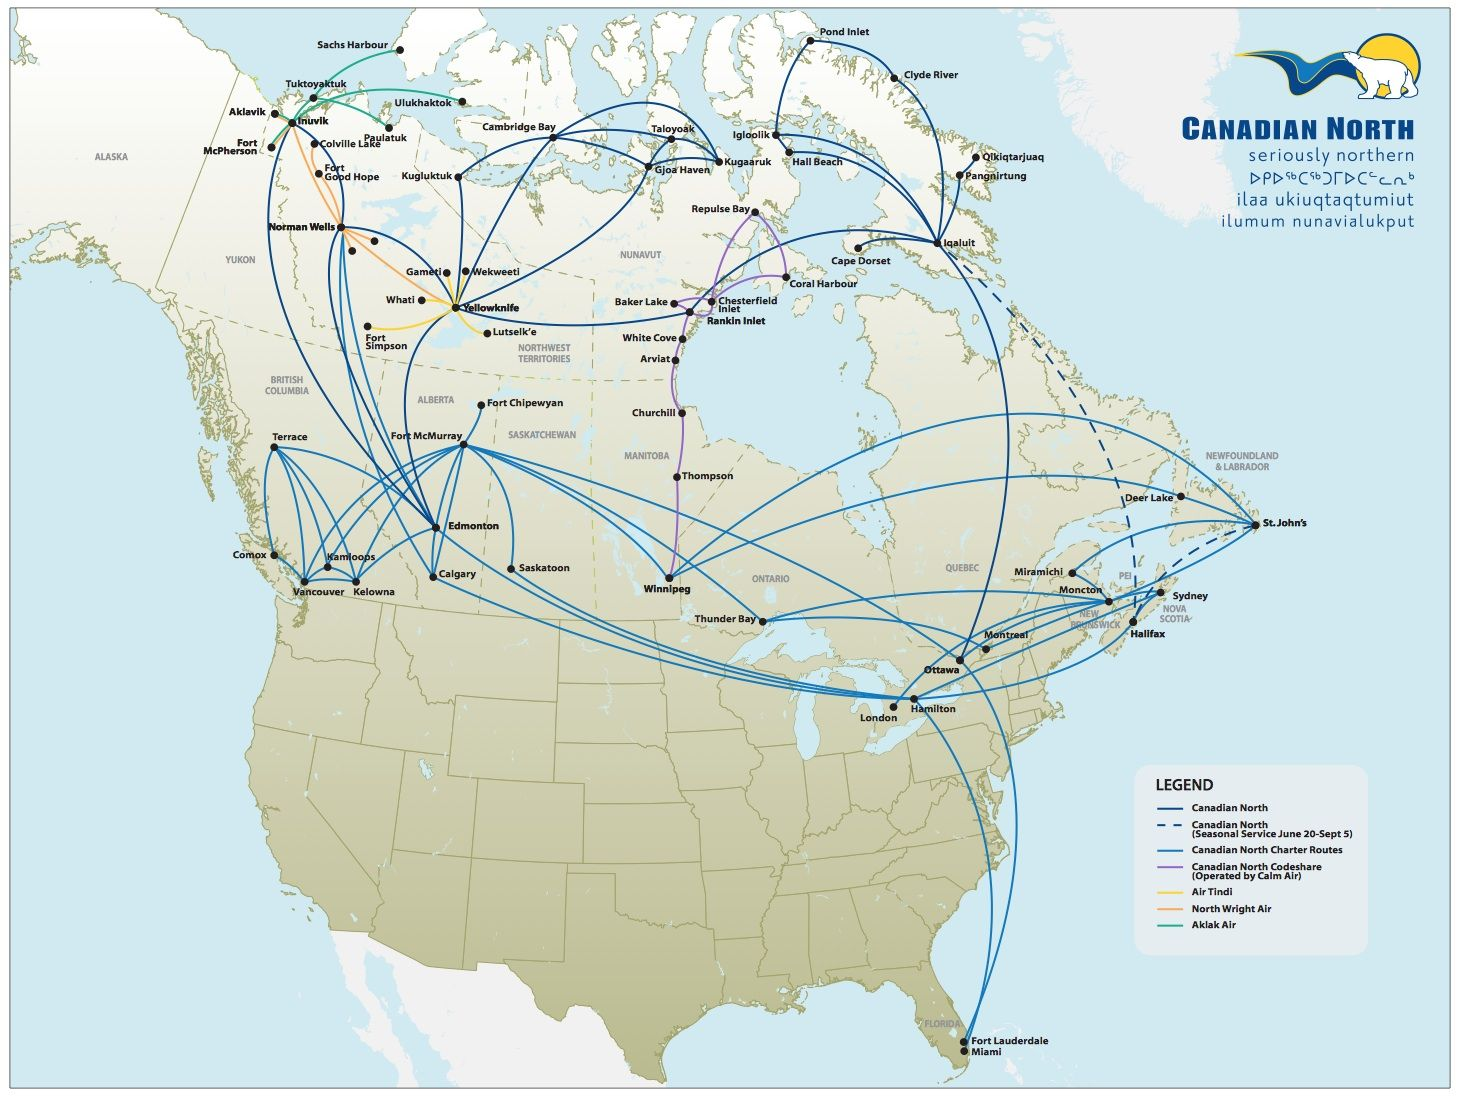 Canada Air Route Map Canadian North & Associates Route Map 2014 | Route map, Map